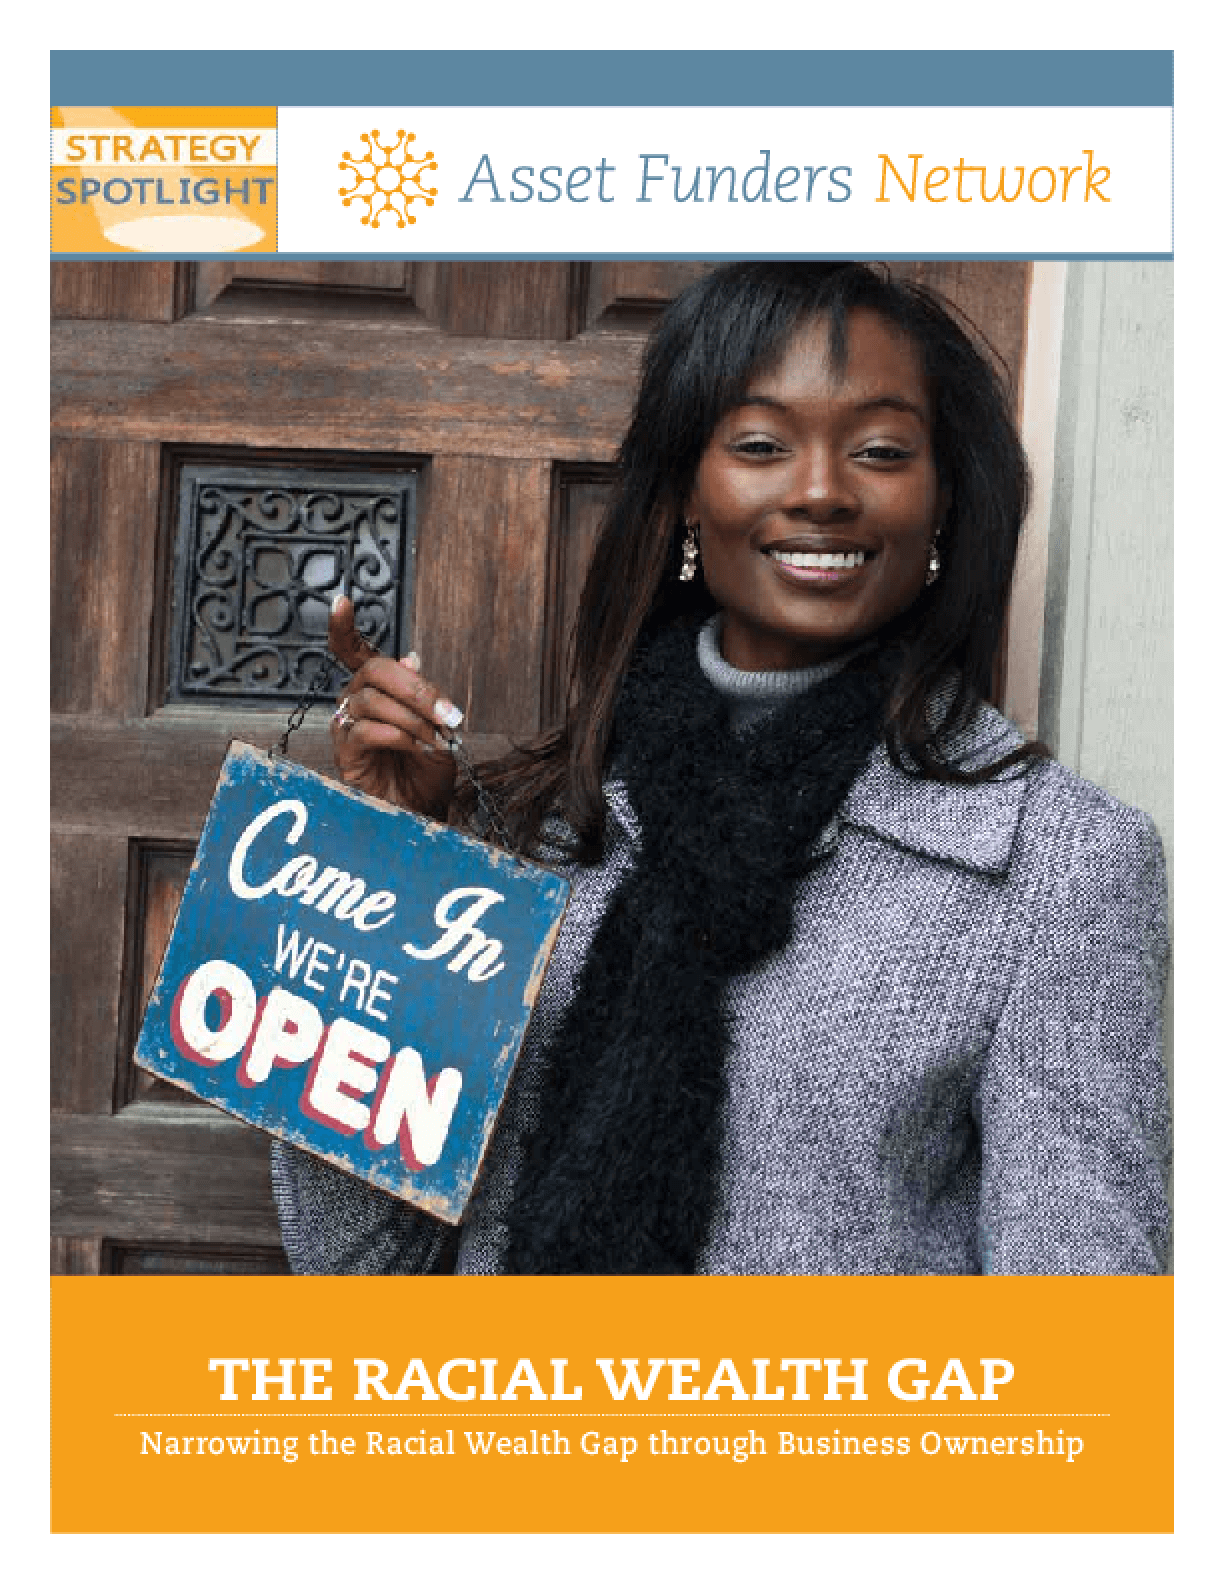 The Racial Wealth Gap: Narrowing the Racial Wealth Gap Through Business Ownership